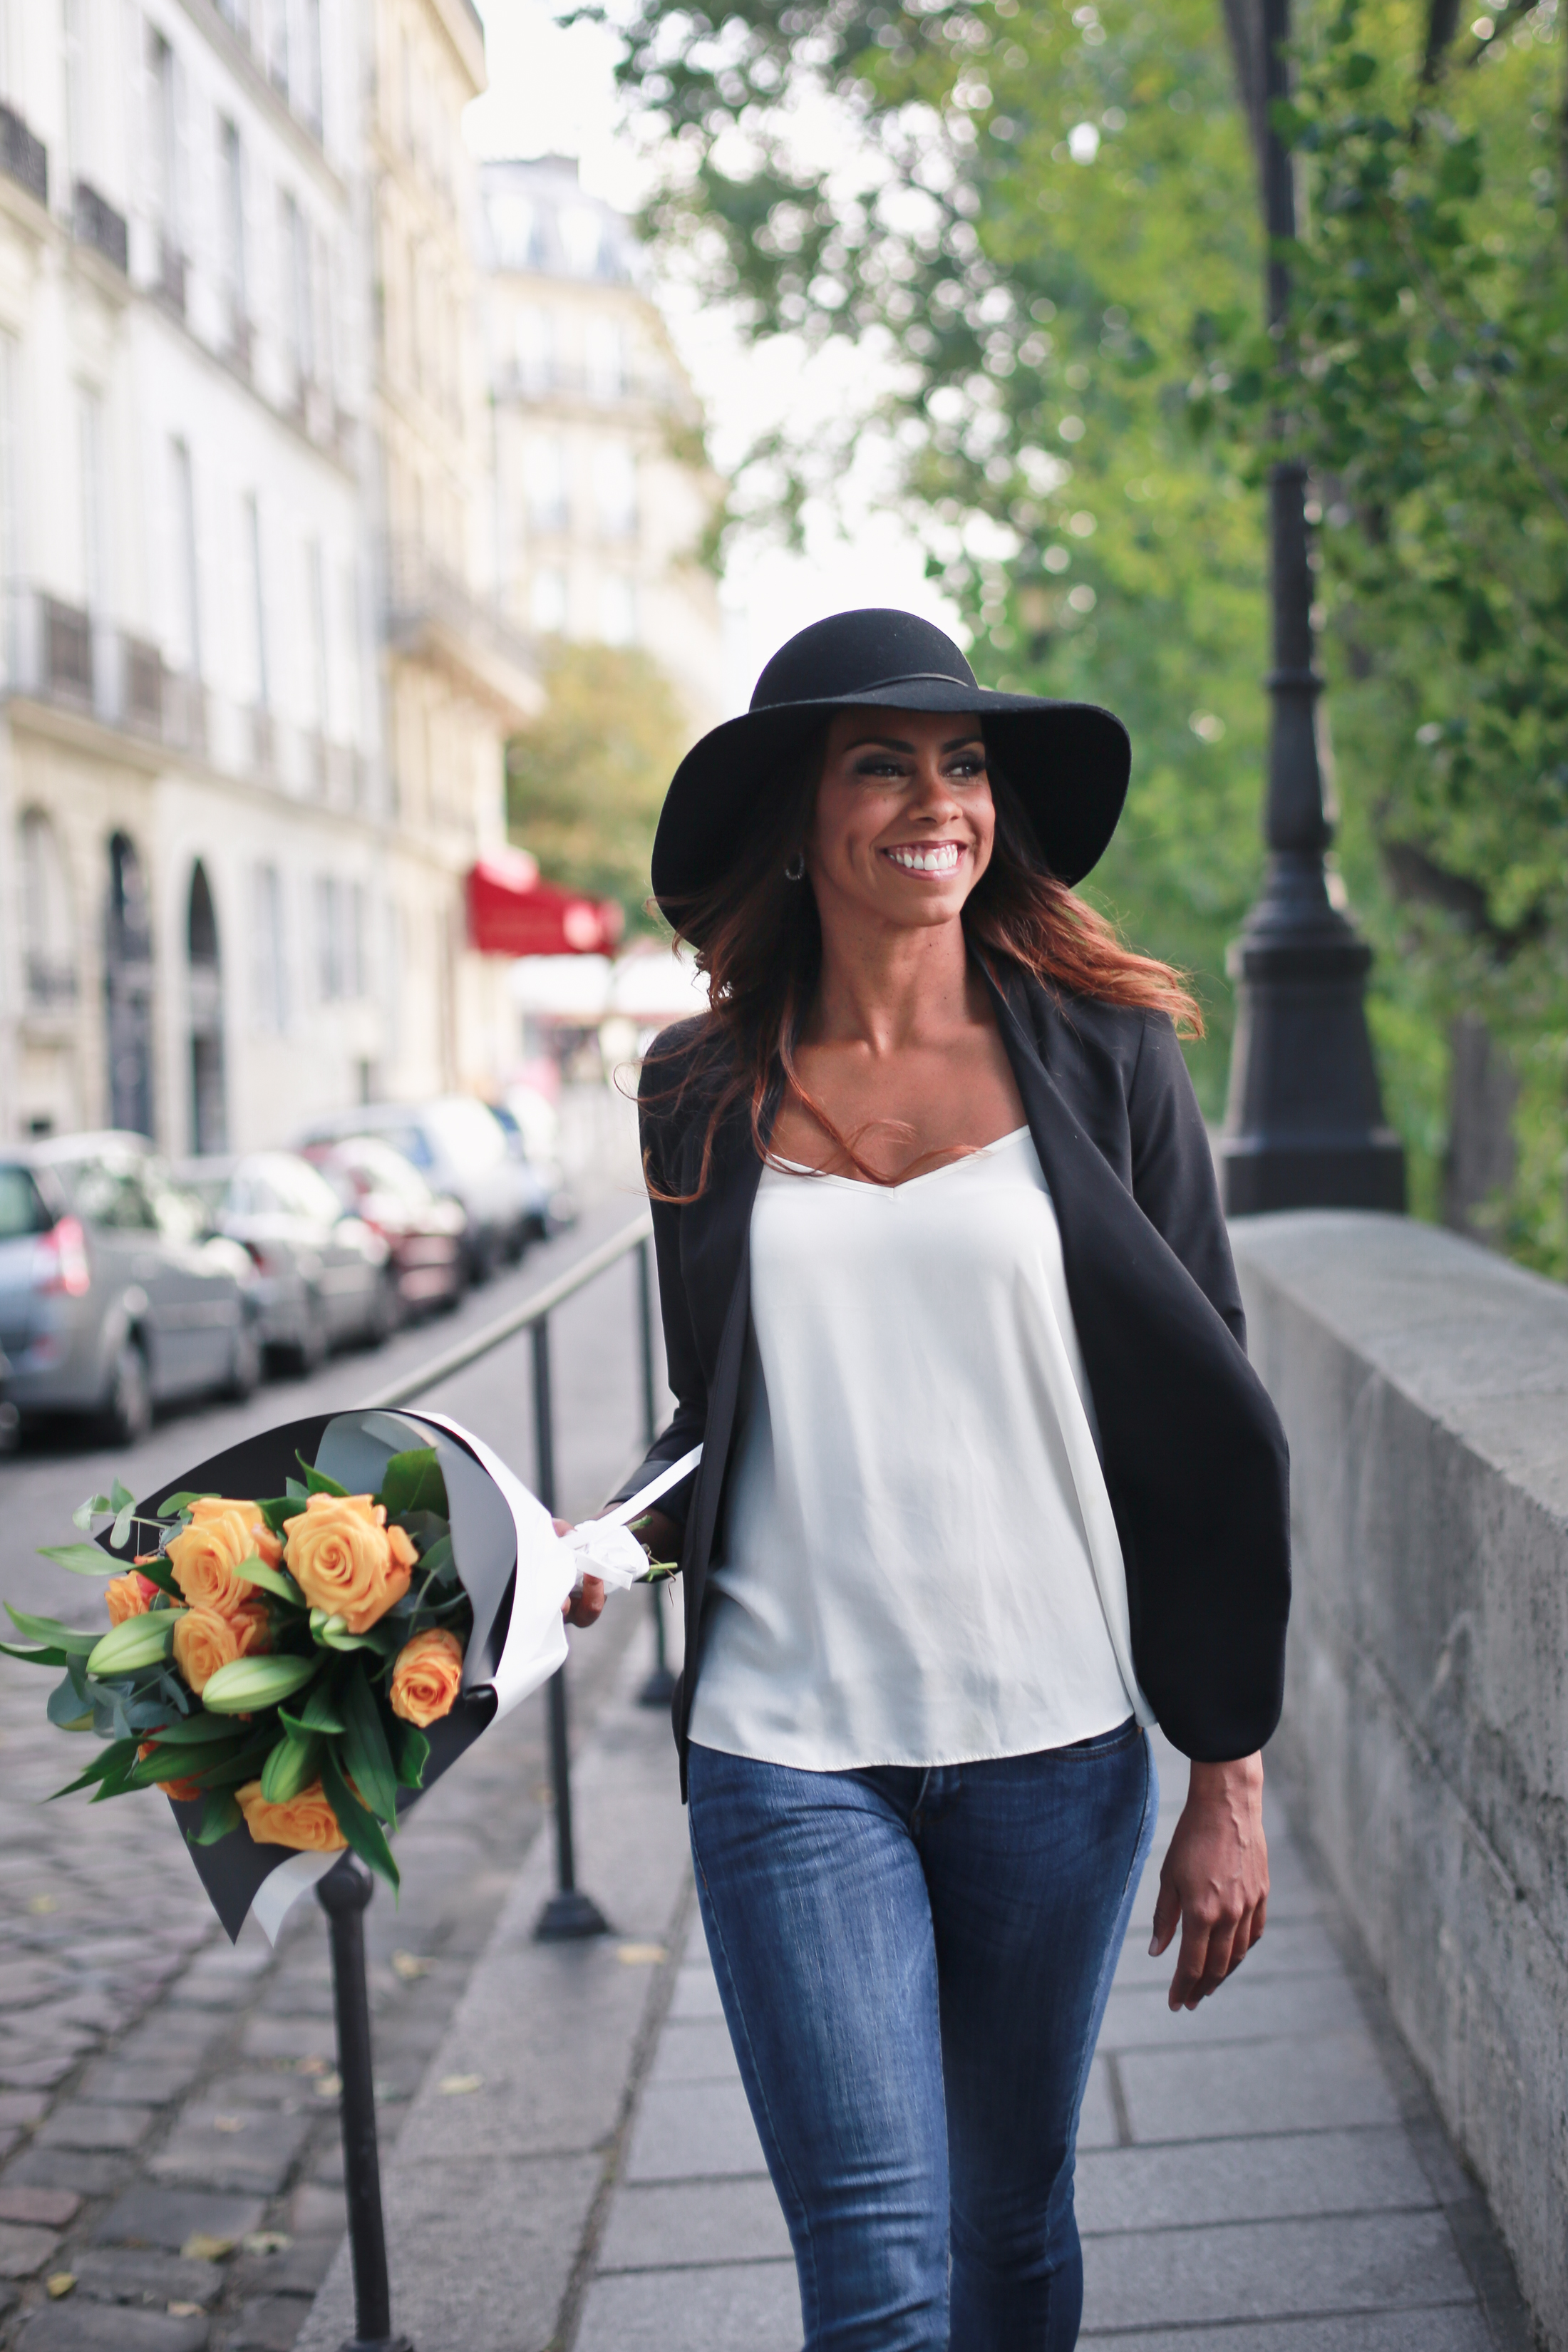 Flytographer vacation photo shoot in Paris. Black hat, blazer, and flowers